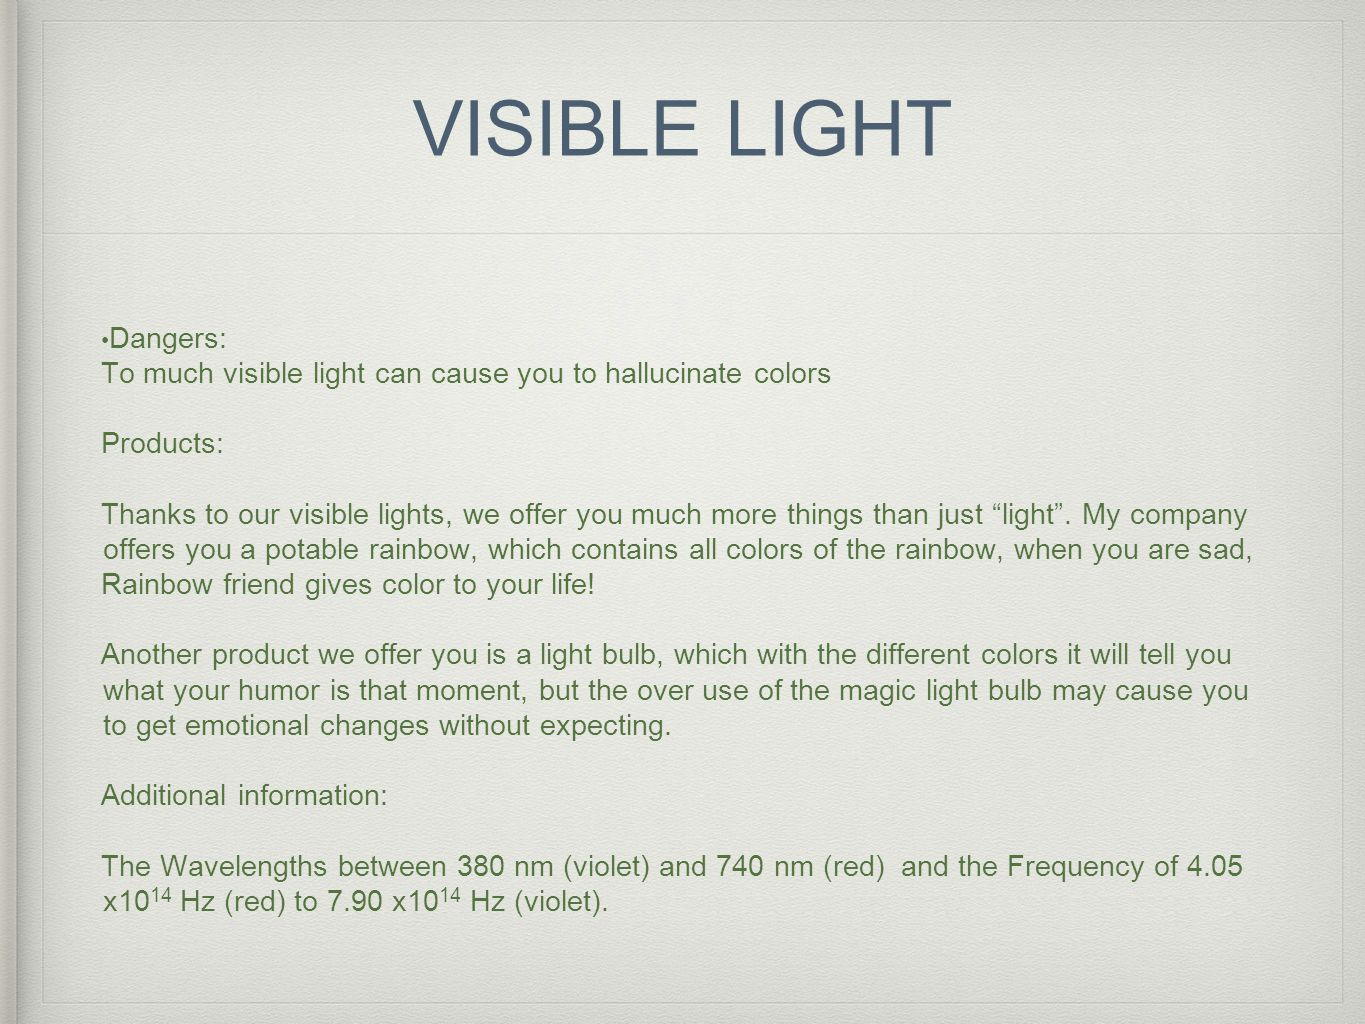 VISIBLE LIGHT Dangers: To much visible light can cause you to hallucinate colors Products: Thanks to our visible lights, we offer you much more things than just light .